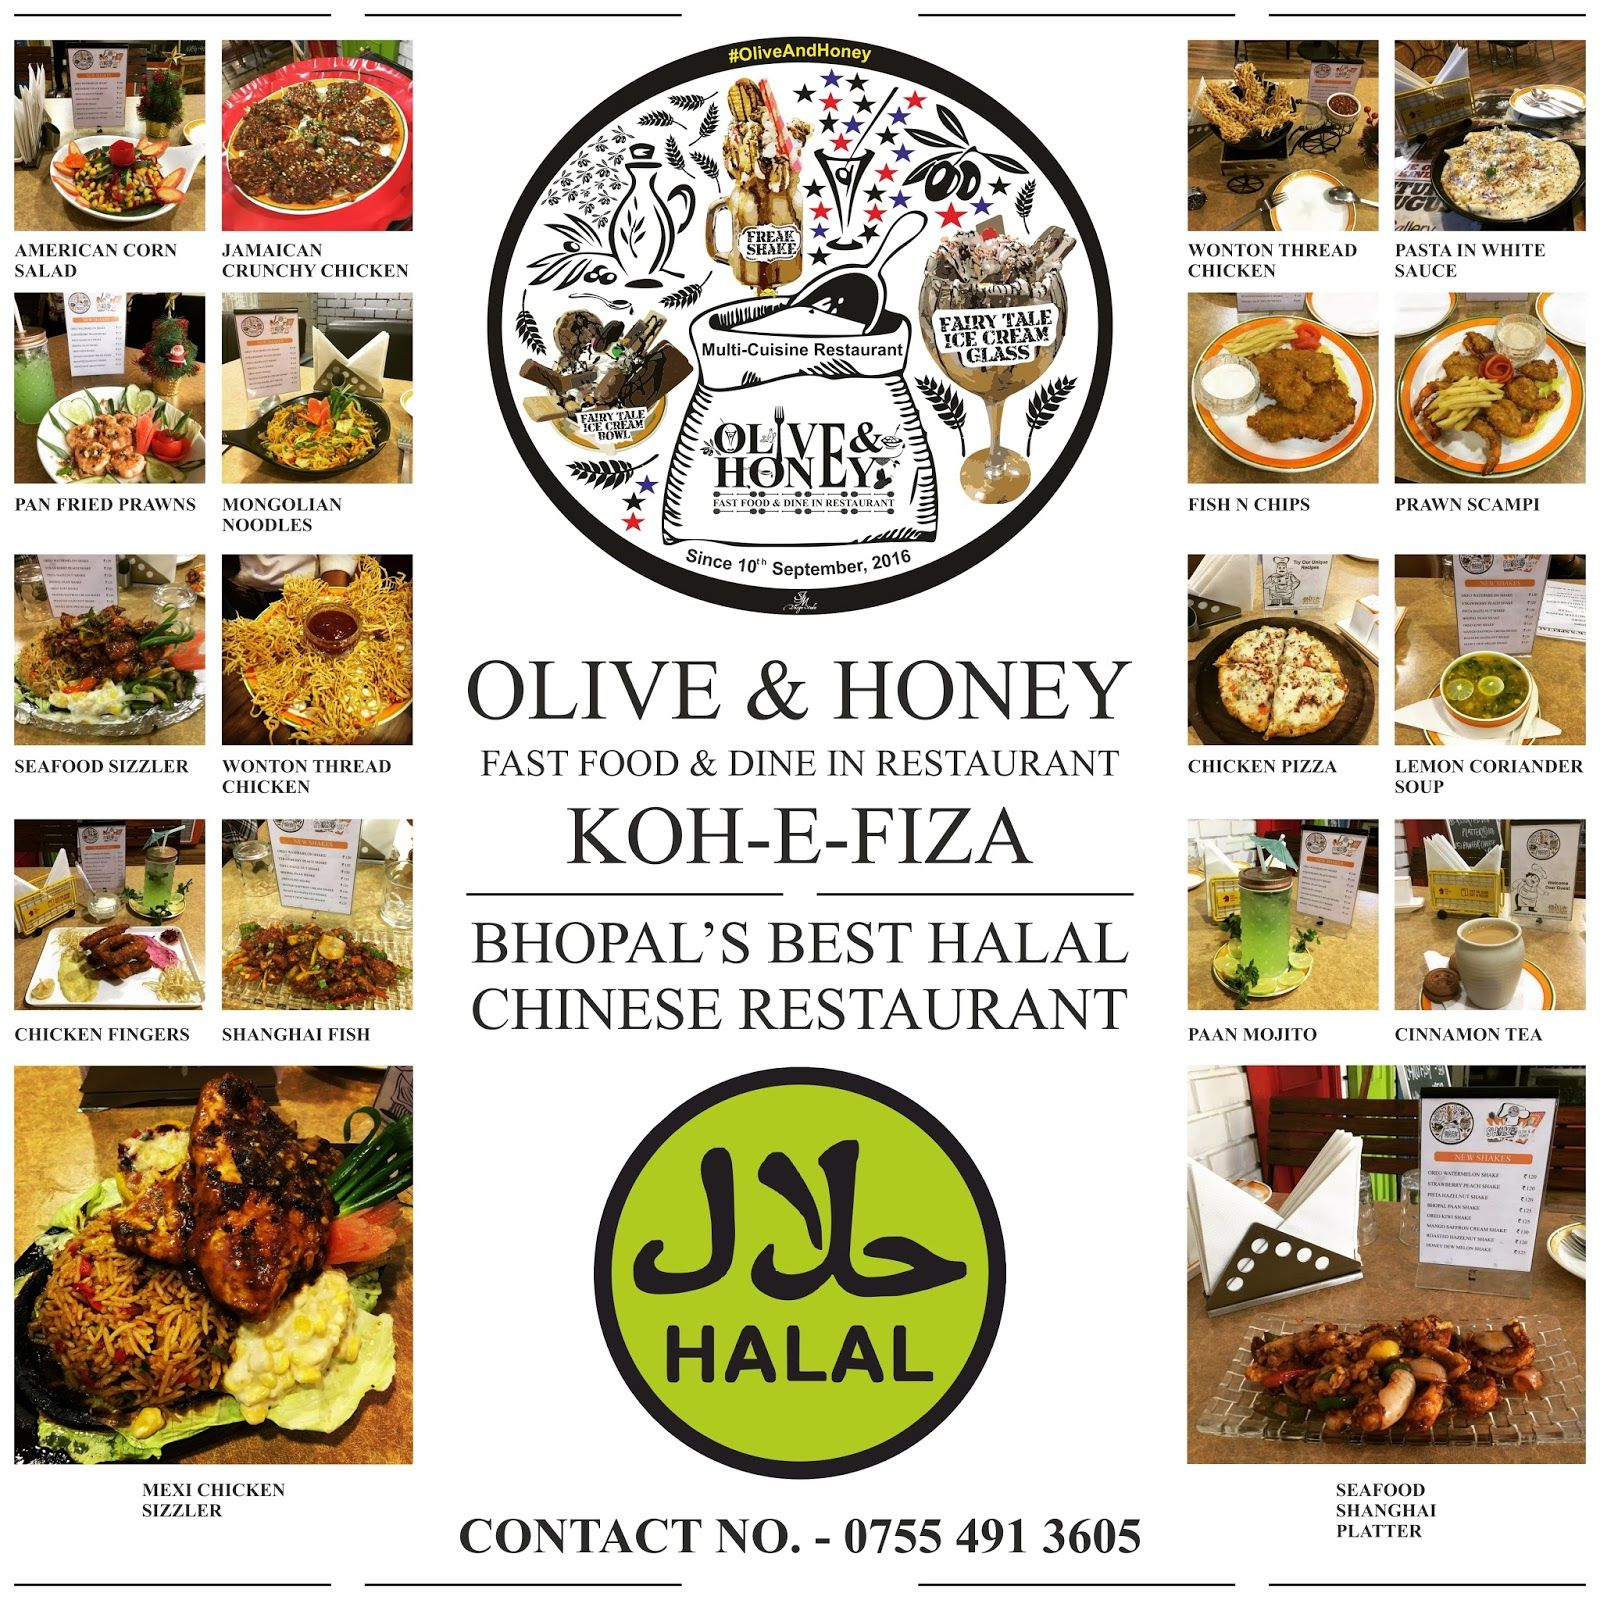 Bhopal S Best Halal Chinese Restaurant Oliveandhoney Fast Food Dine In Restaurant Kohefiza Bhopa Lemon Soup Sauce For Chicken Chinese Restaurant